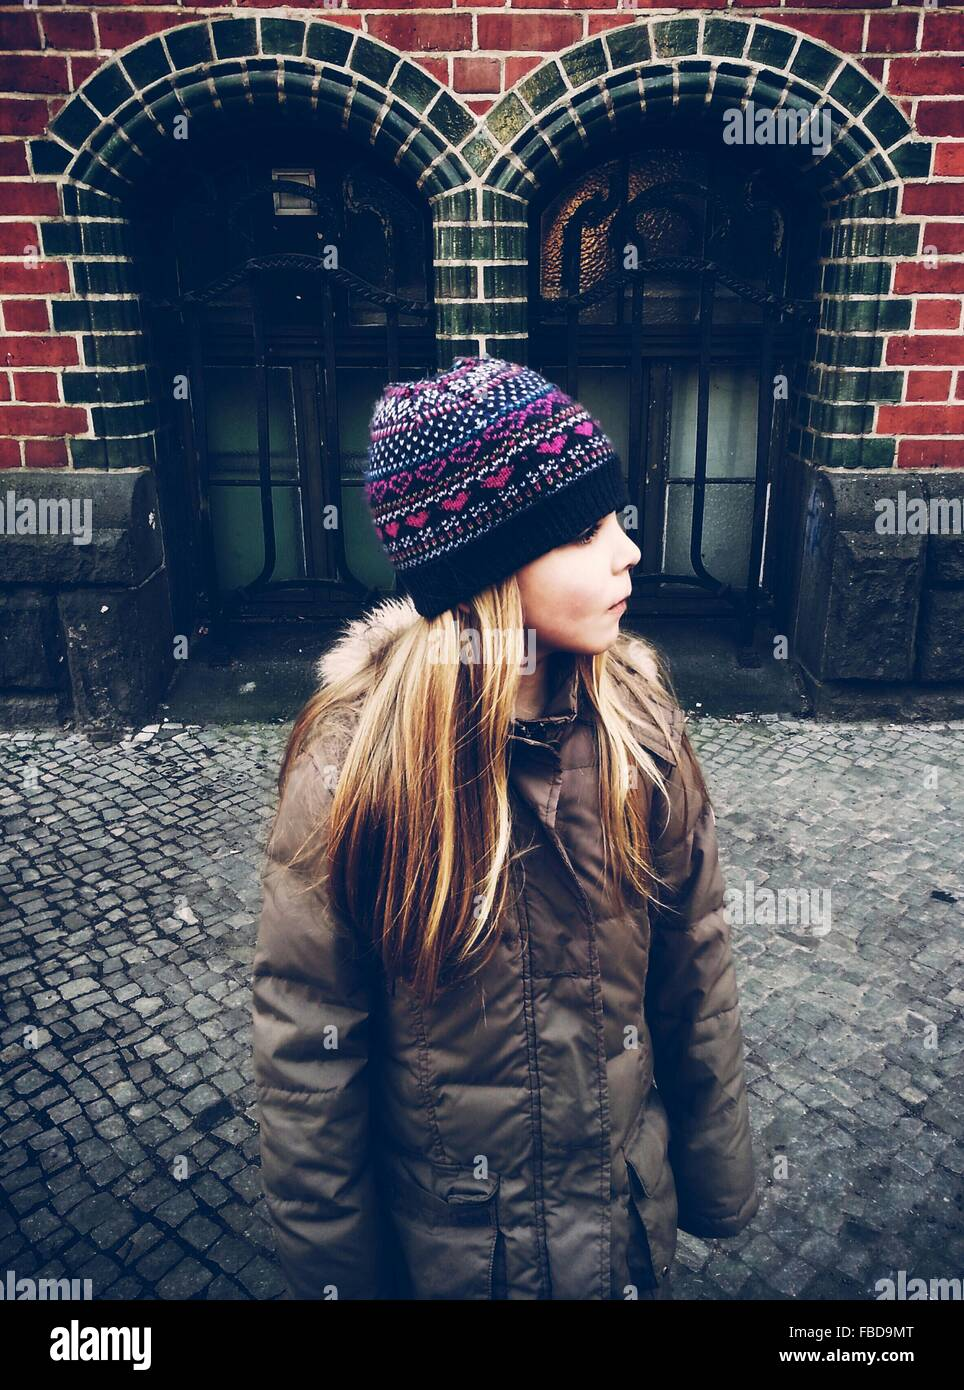 Girl In Warm Jacket Standing On Sidewalk - Stock Image